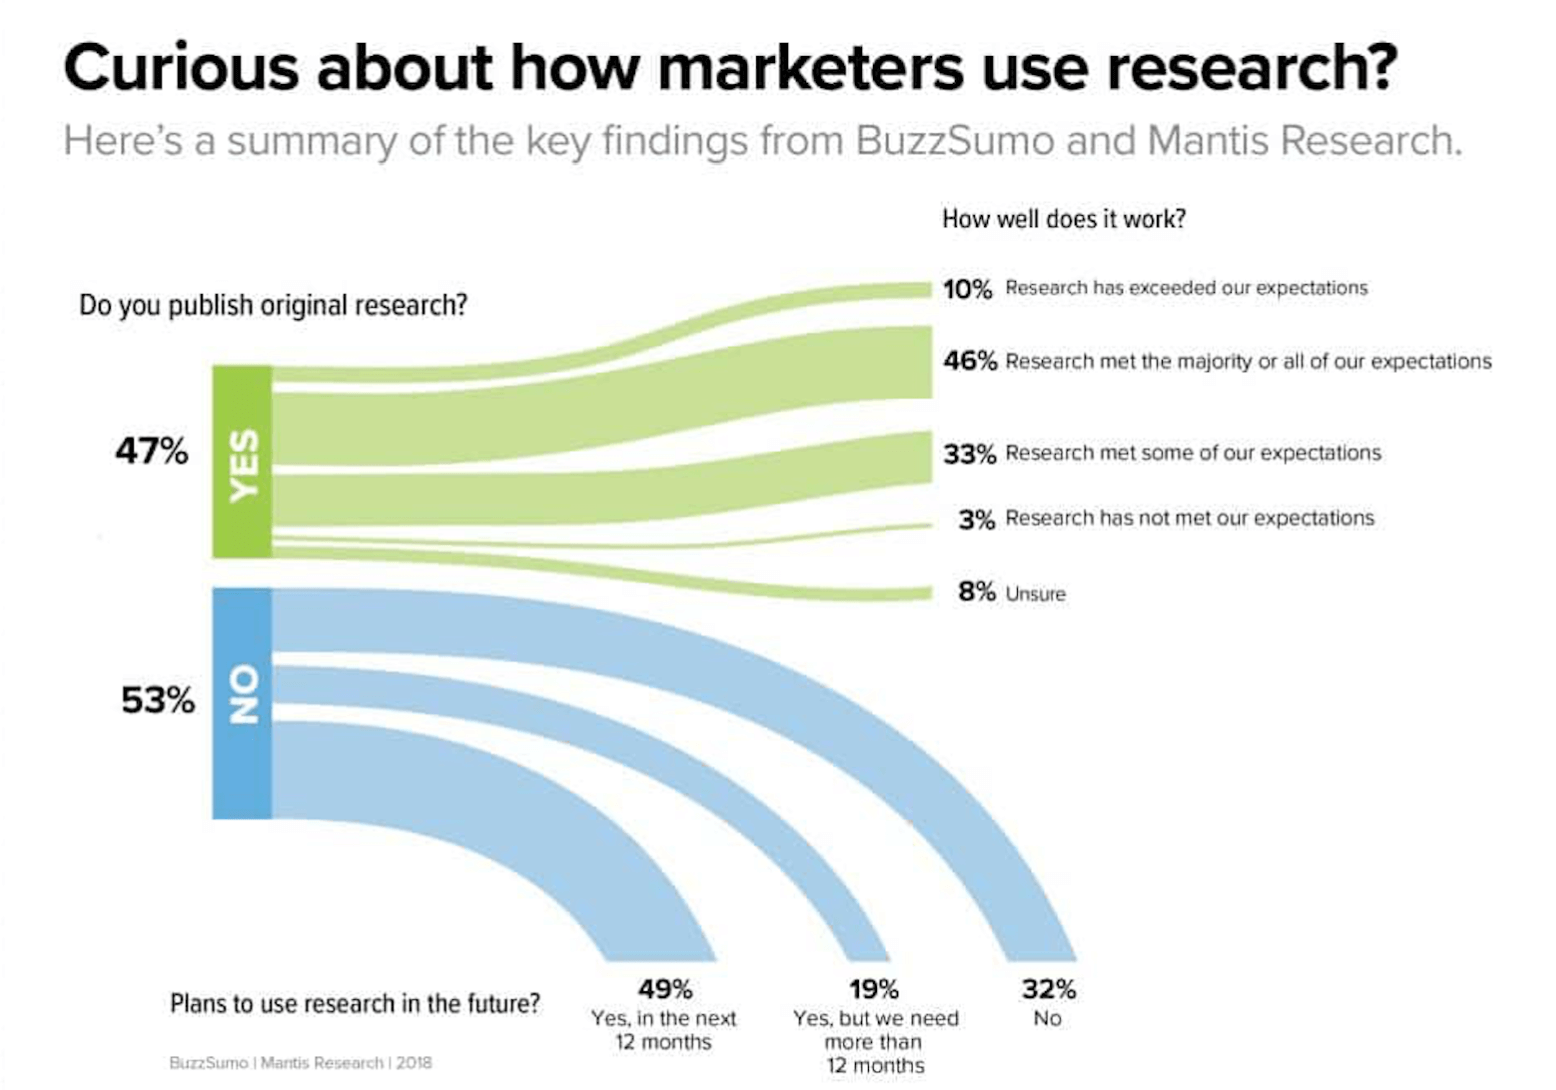 How To Create And Publish Original Research: Answers to Marketers' Questions